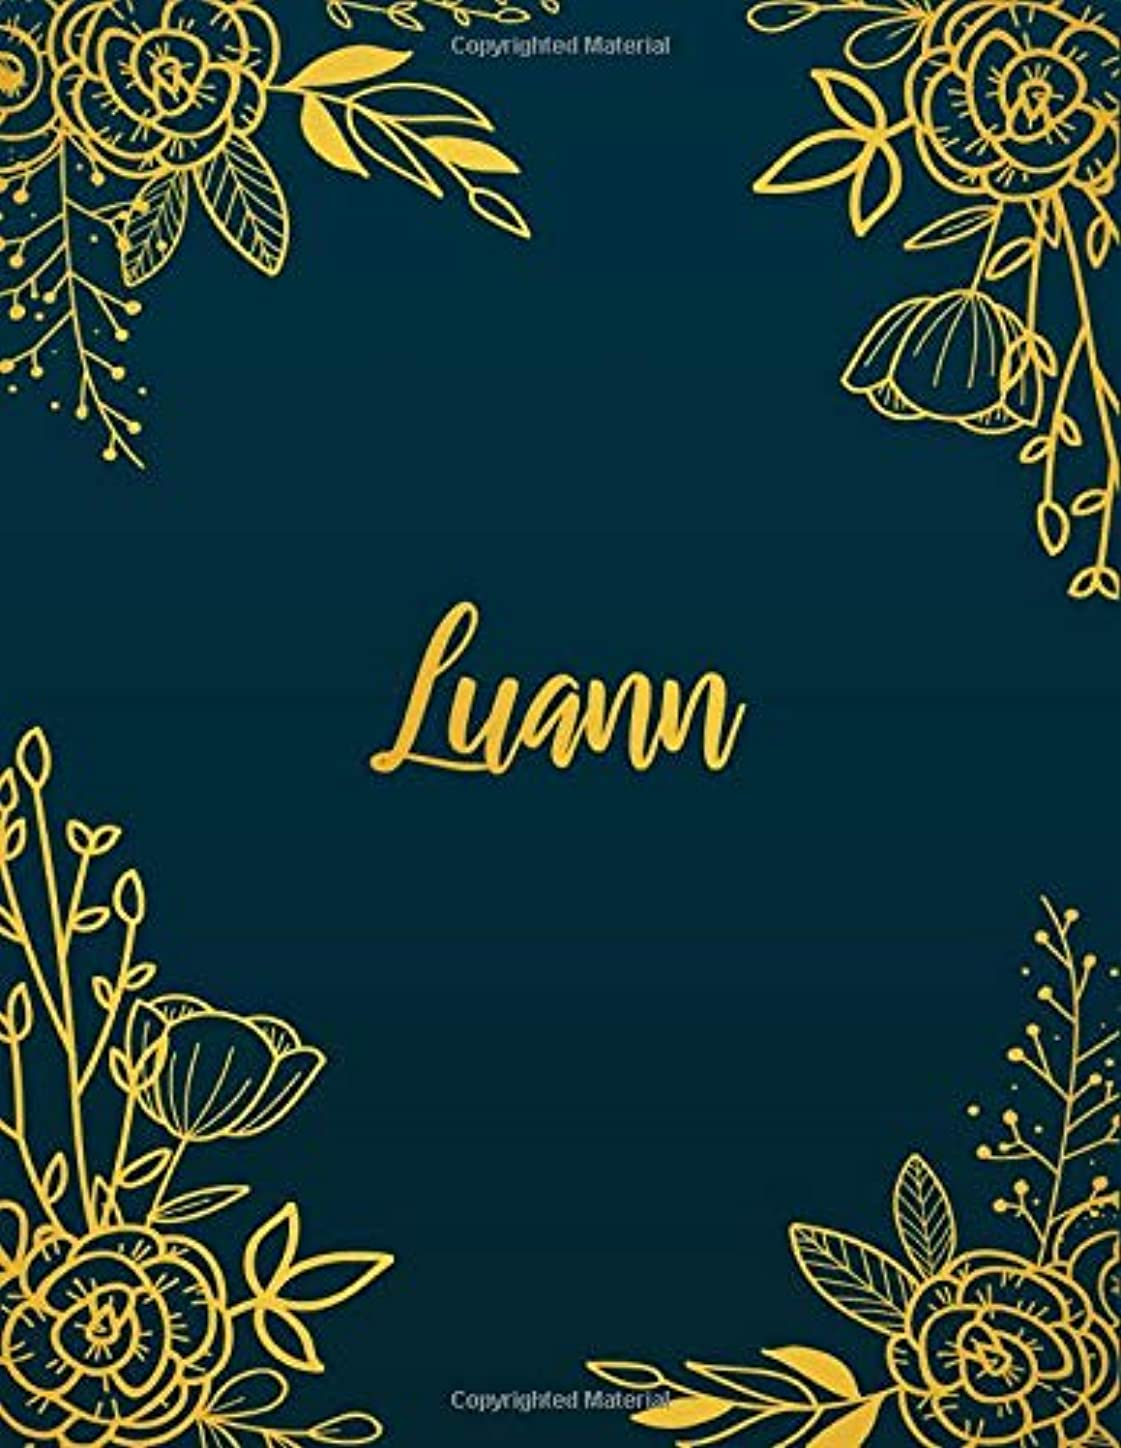 忠実な架空のメンターLuann: Personalized Name Notebook/Journal  Perfect Gift For Women & Girls 100 Pages A4